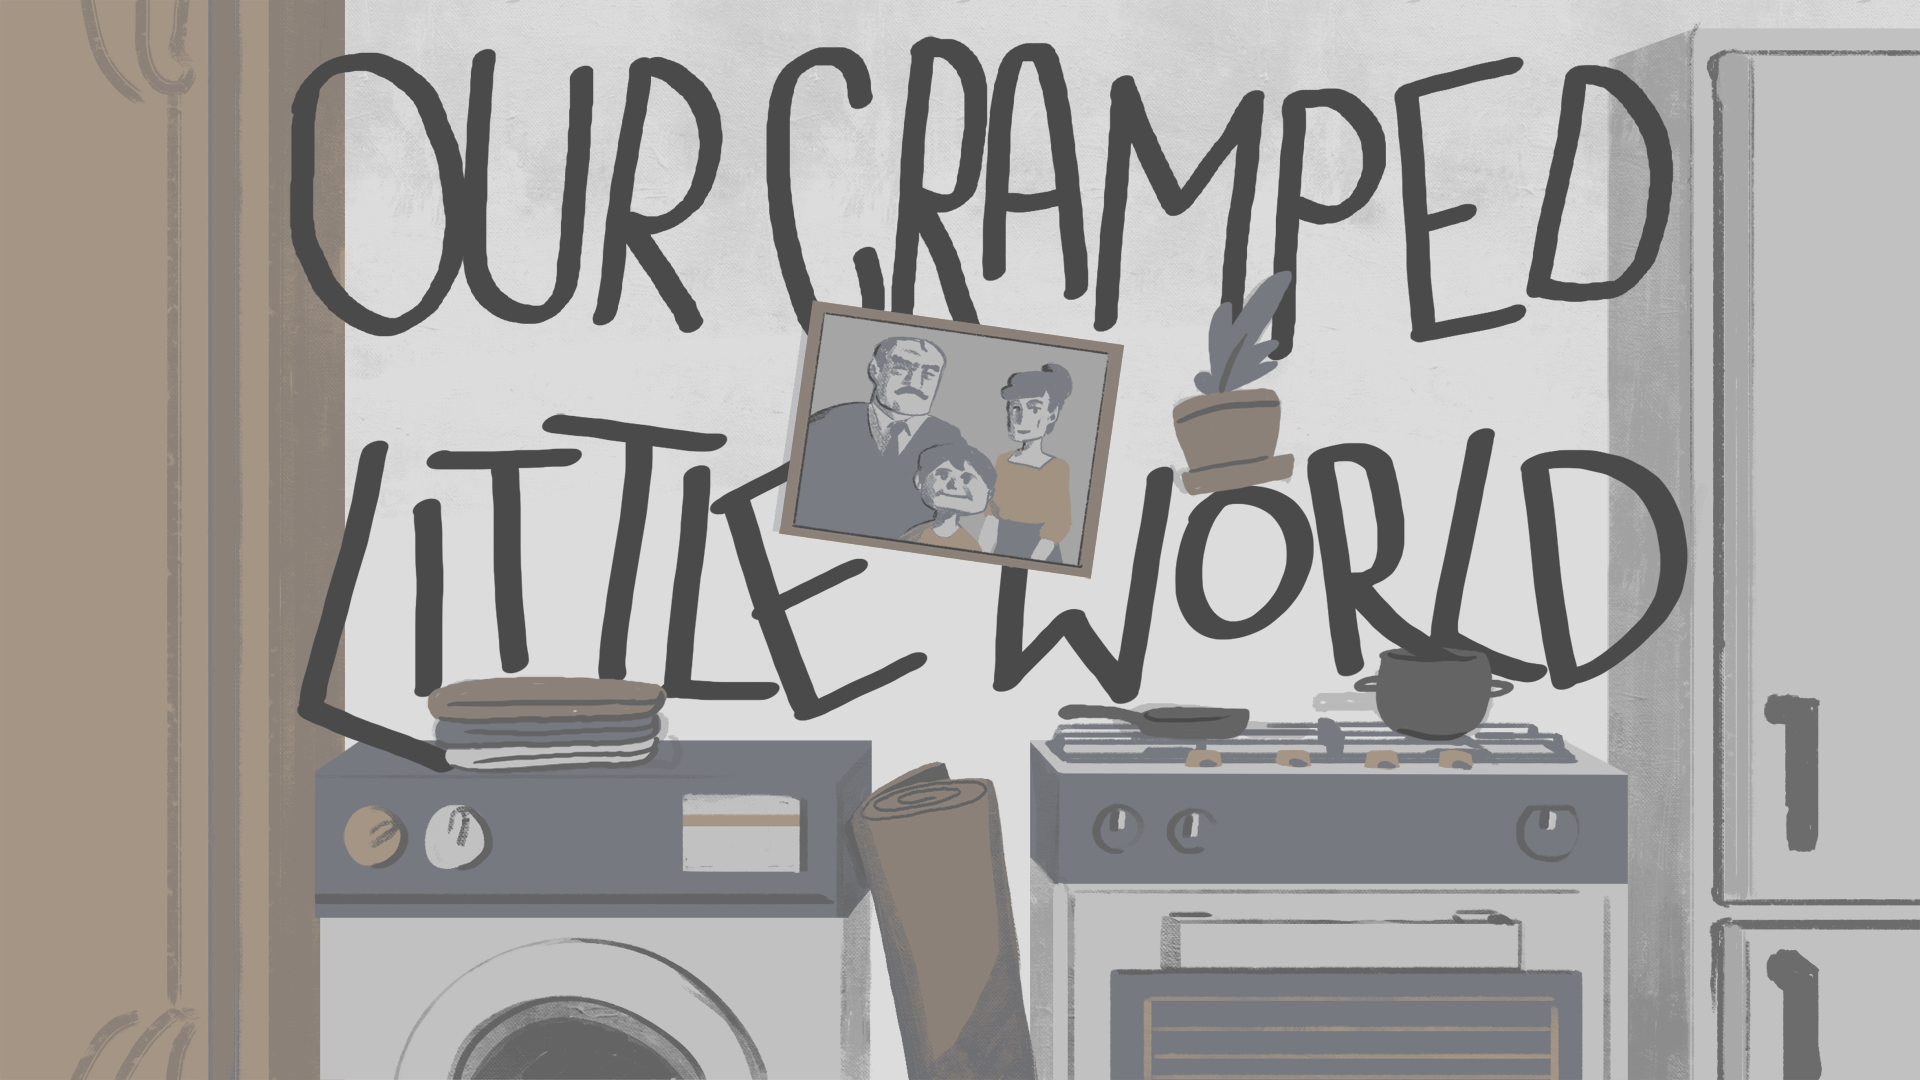 Our Cramped Little World